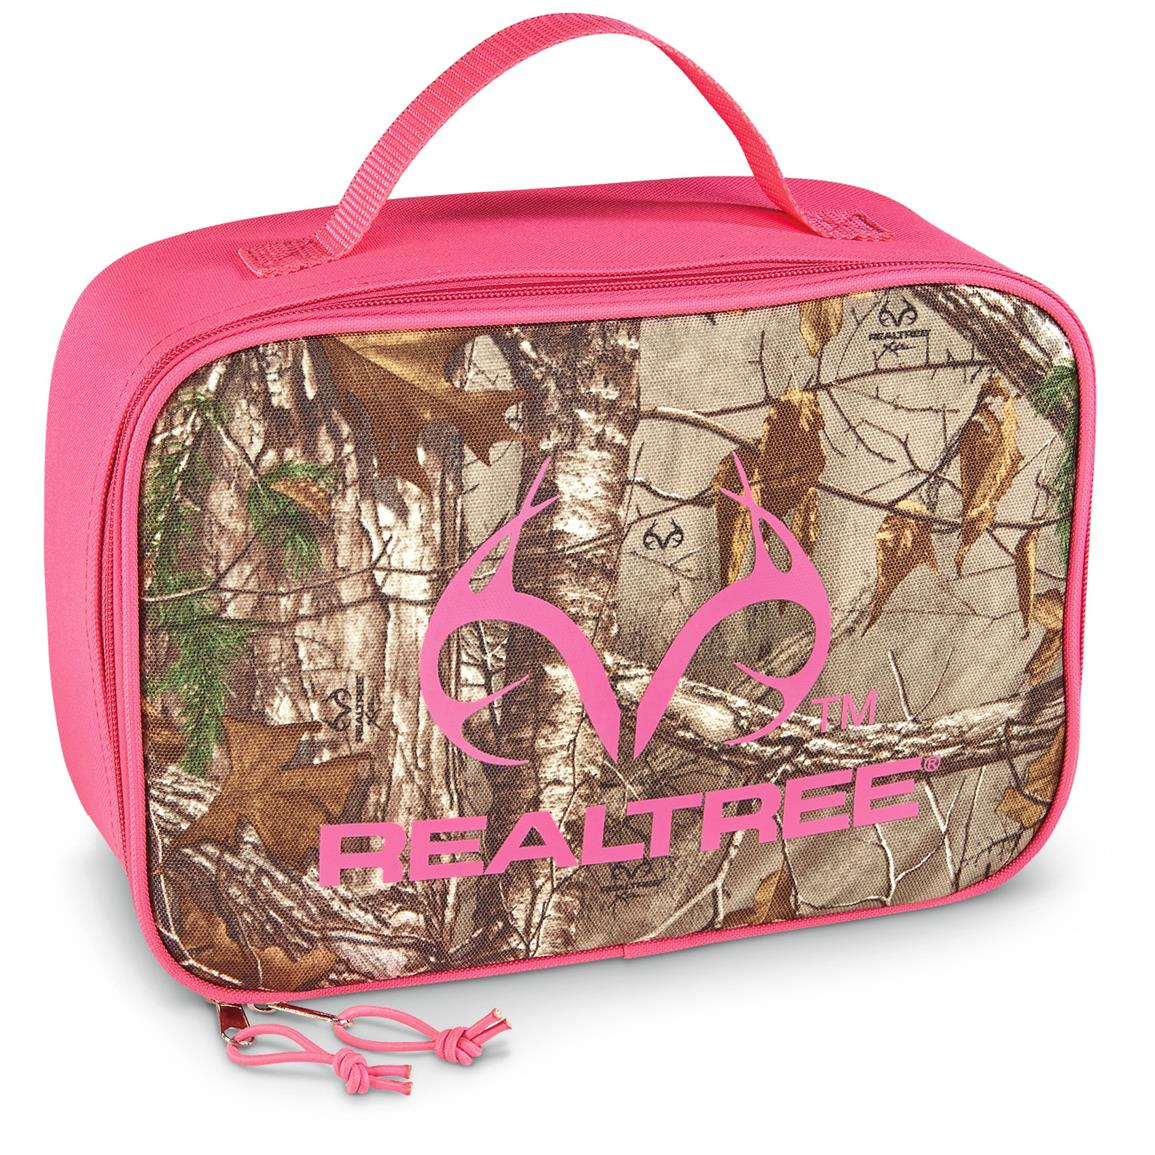 FREE insulated Lunch Box